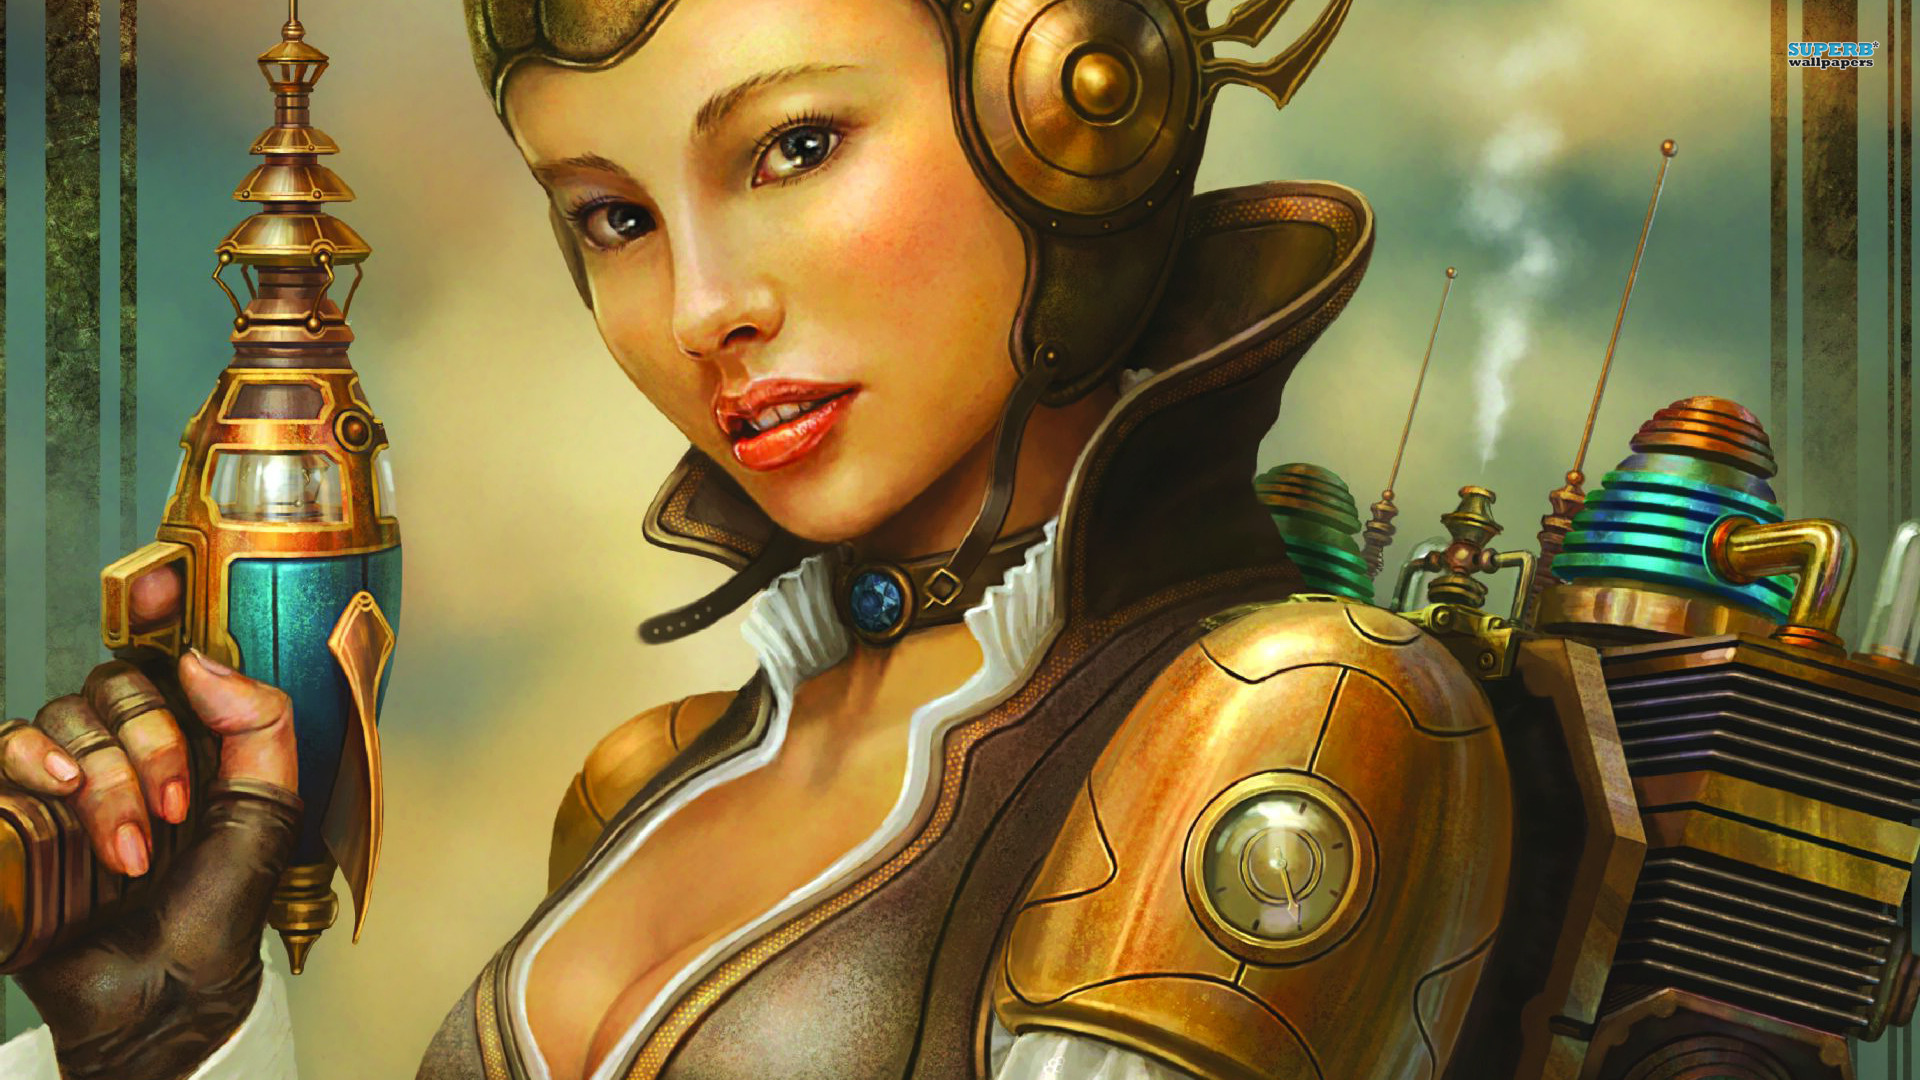 Steampunk Wallpapers Photos And Desktop Backgrounds Up To 8K